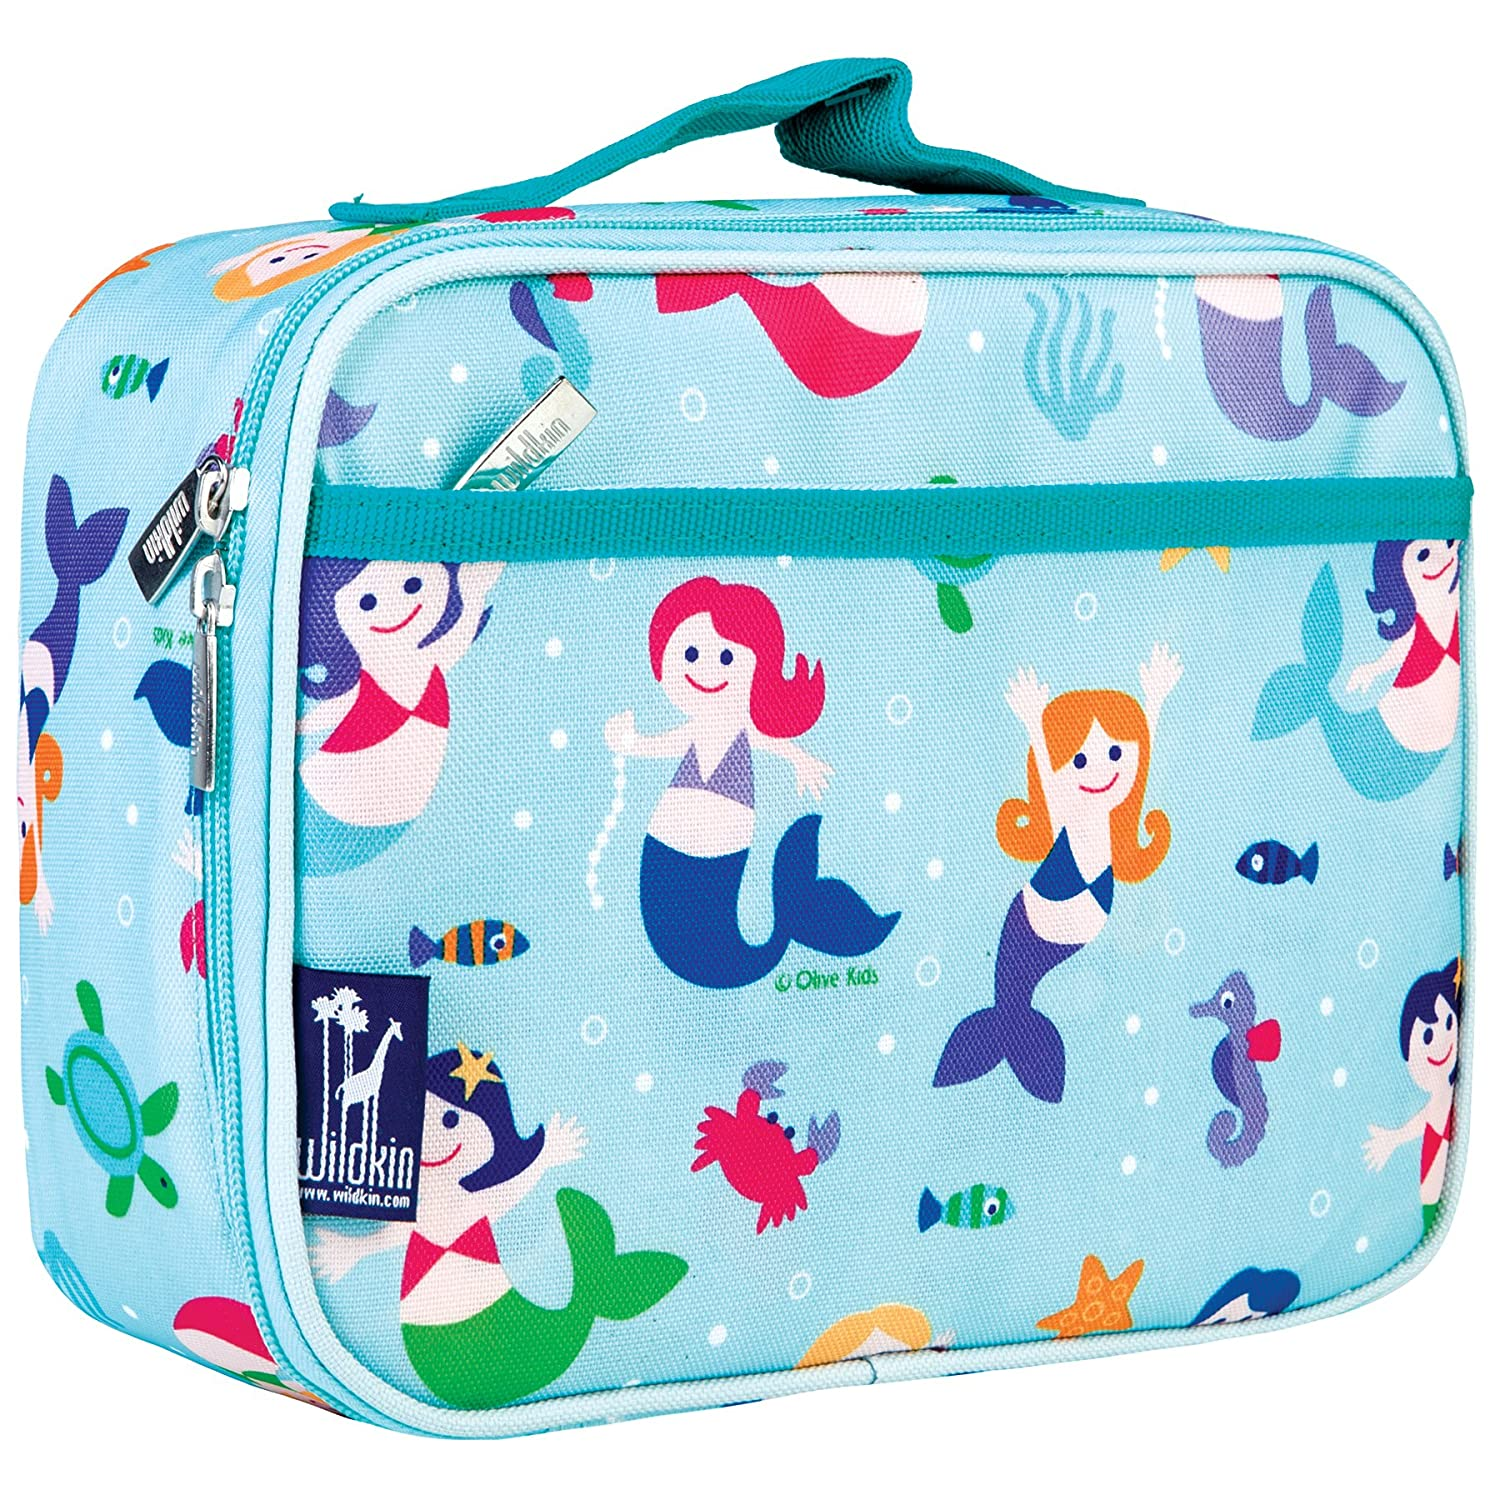 Olive Kids Mermaids Lunch Box